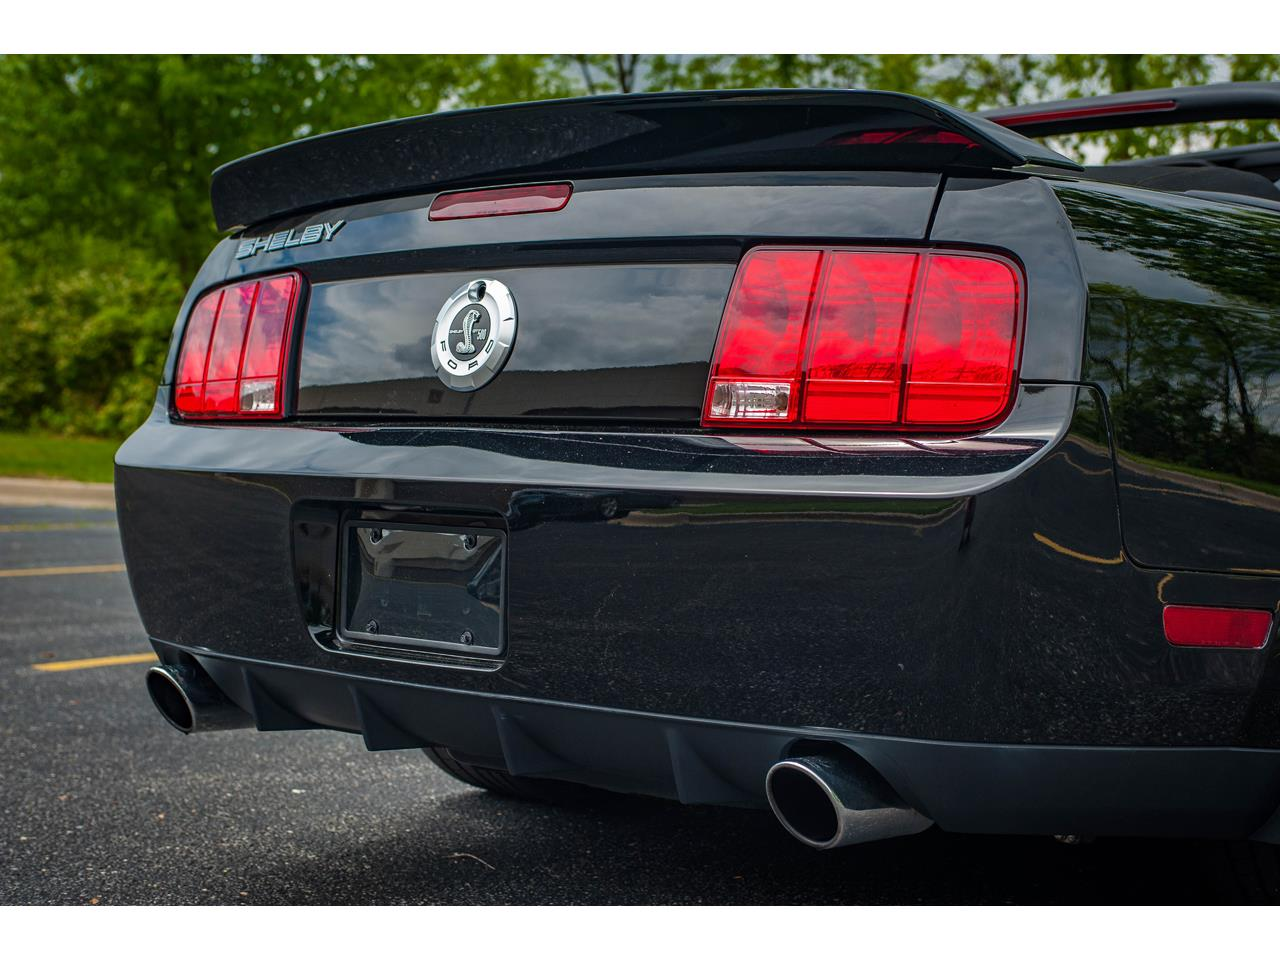 Large Picture of '07 Mustang - $40,500.00 Offered by Gateway Classic Cars - St. Louis - QB98